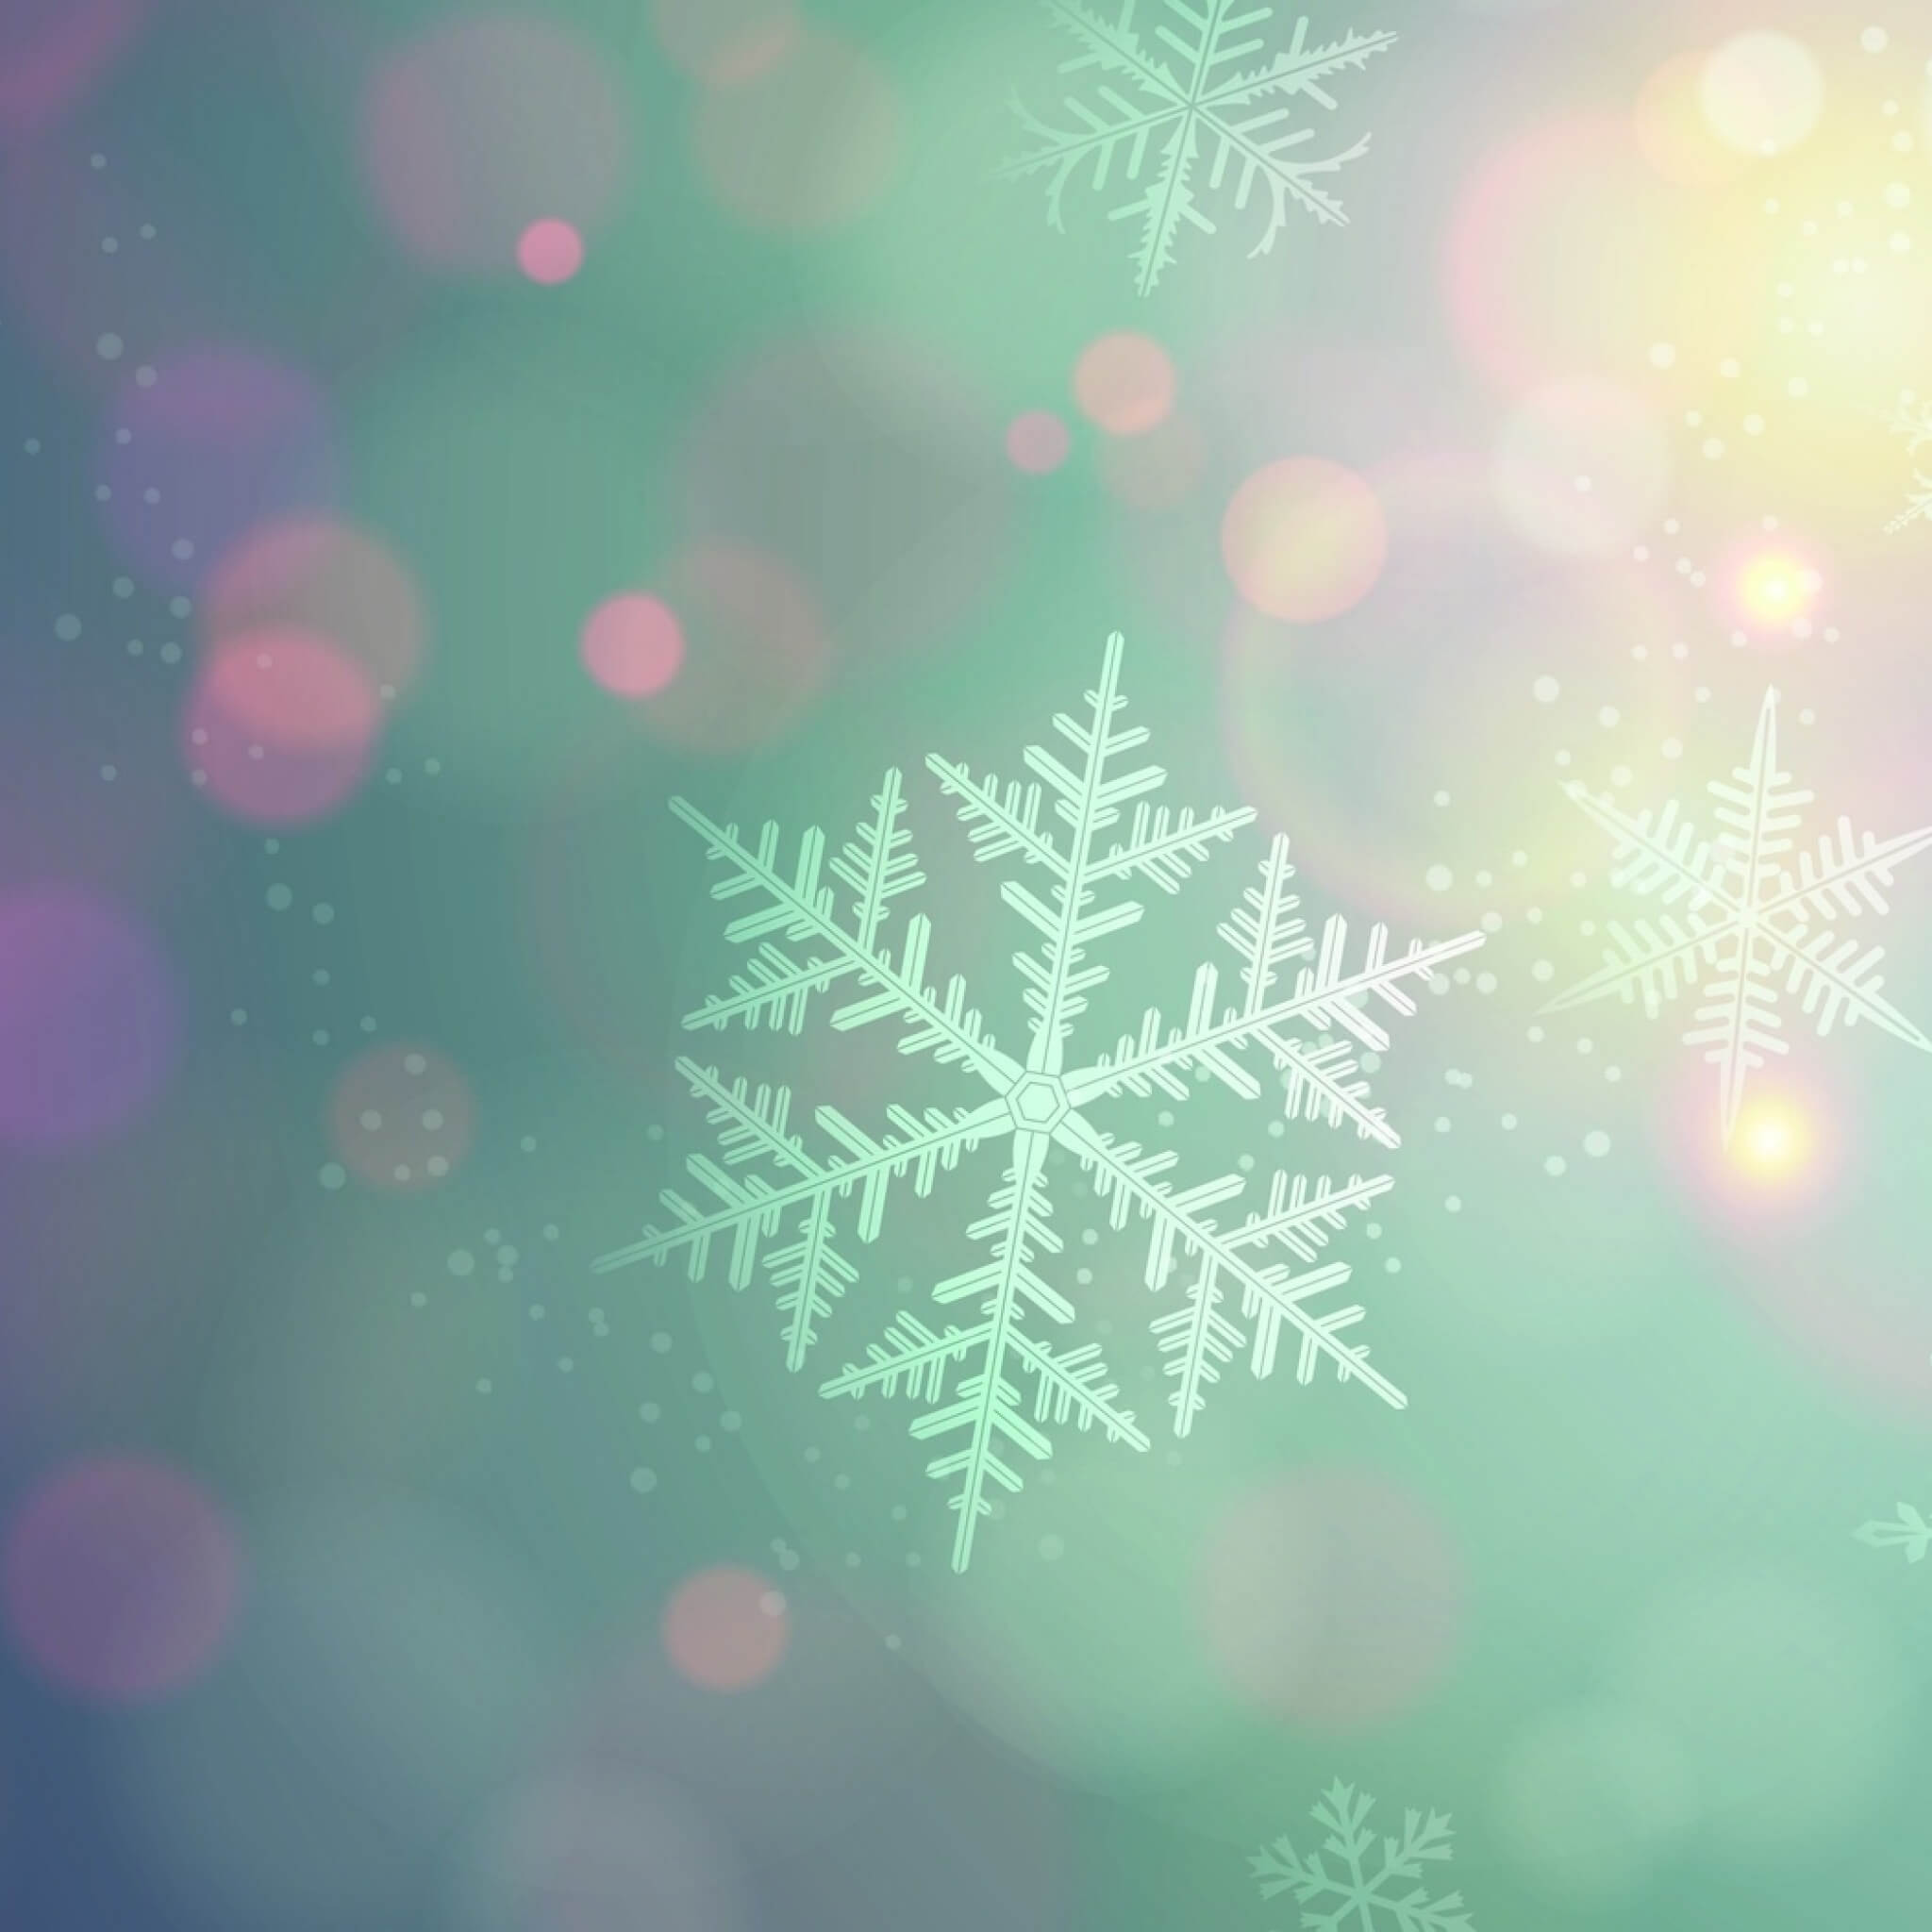 snowflakes_background_light_spot_66937_2048x2048